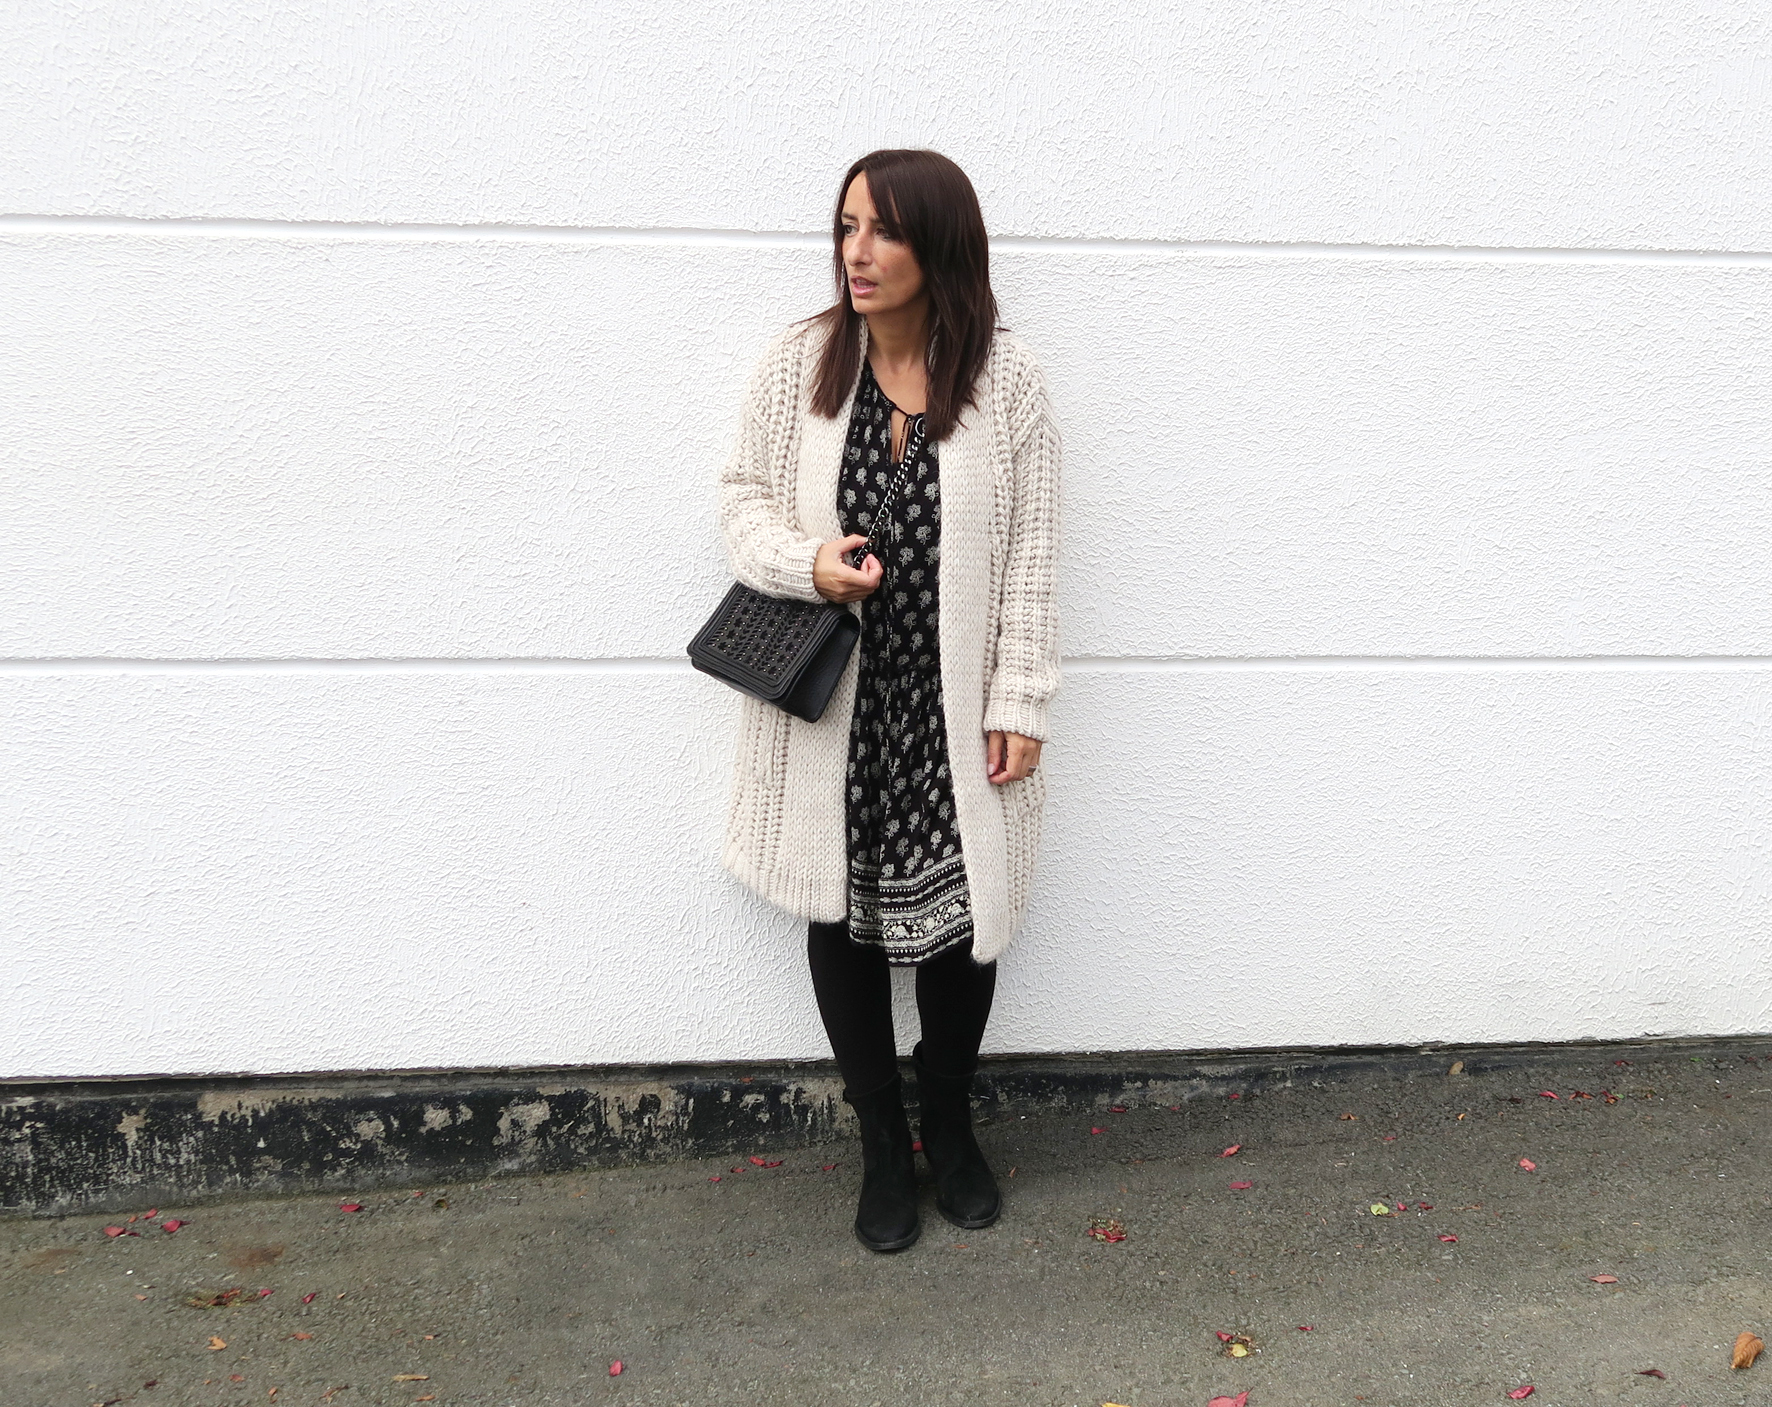 blogger-style-winter-dress-knit-fashionblogger-streetstyle-boots-5